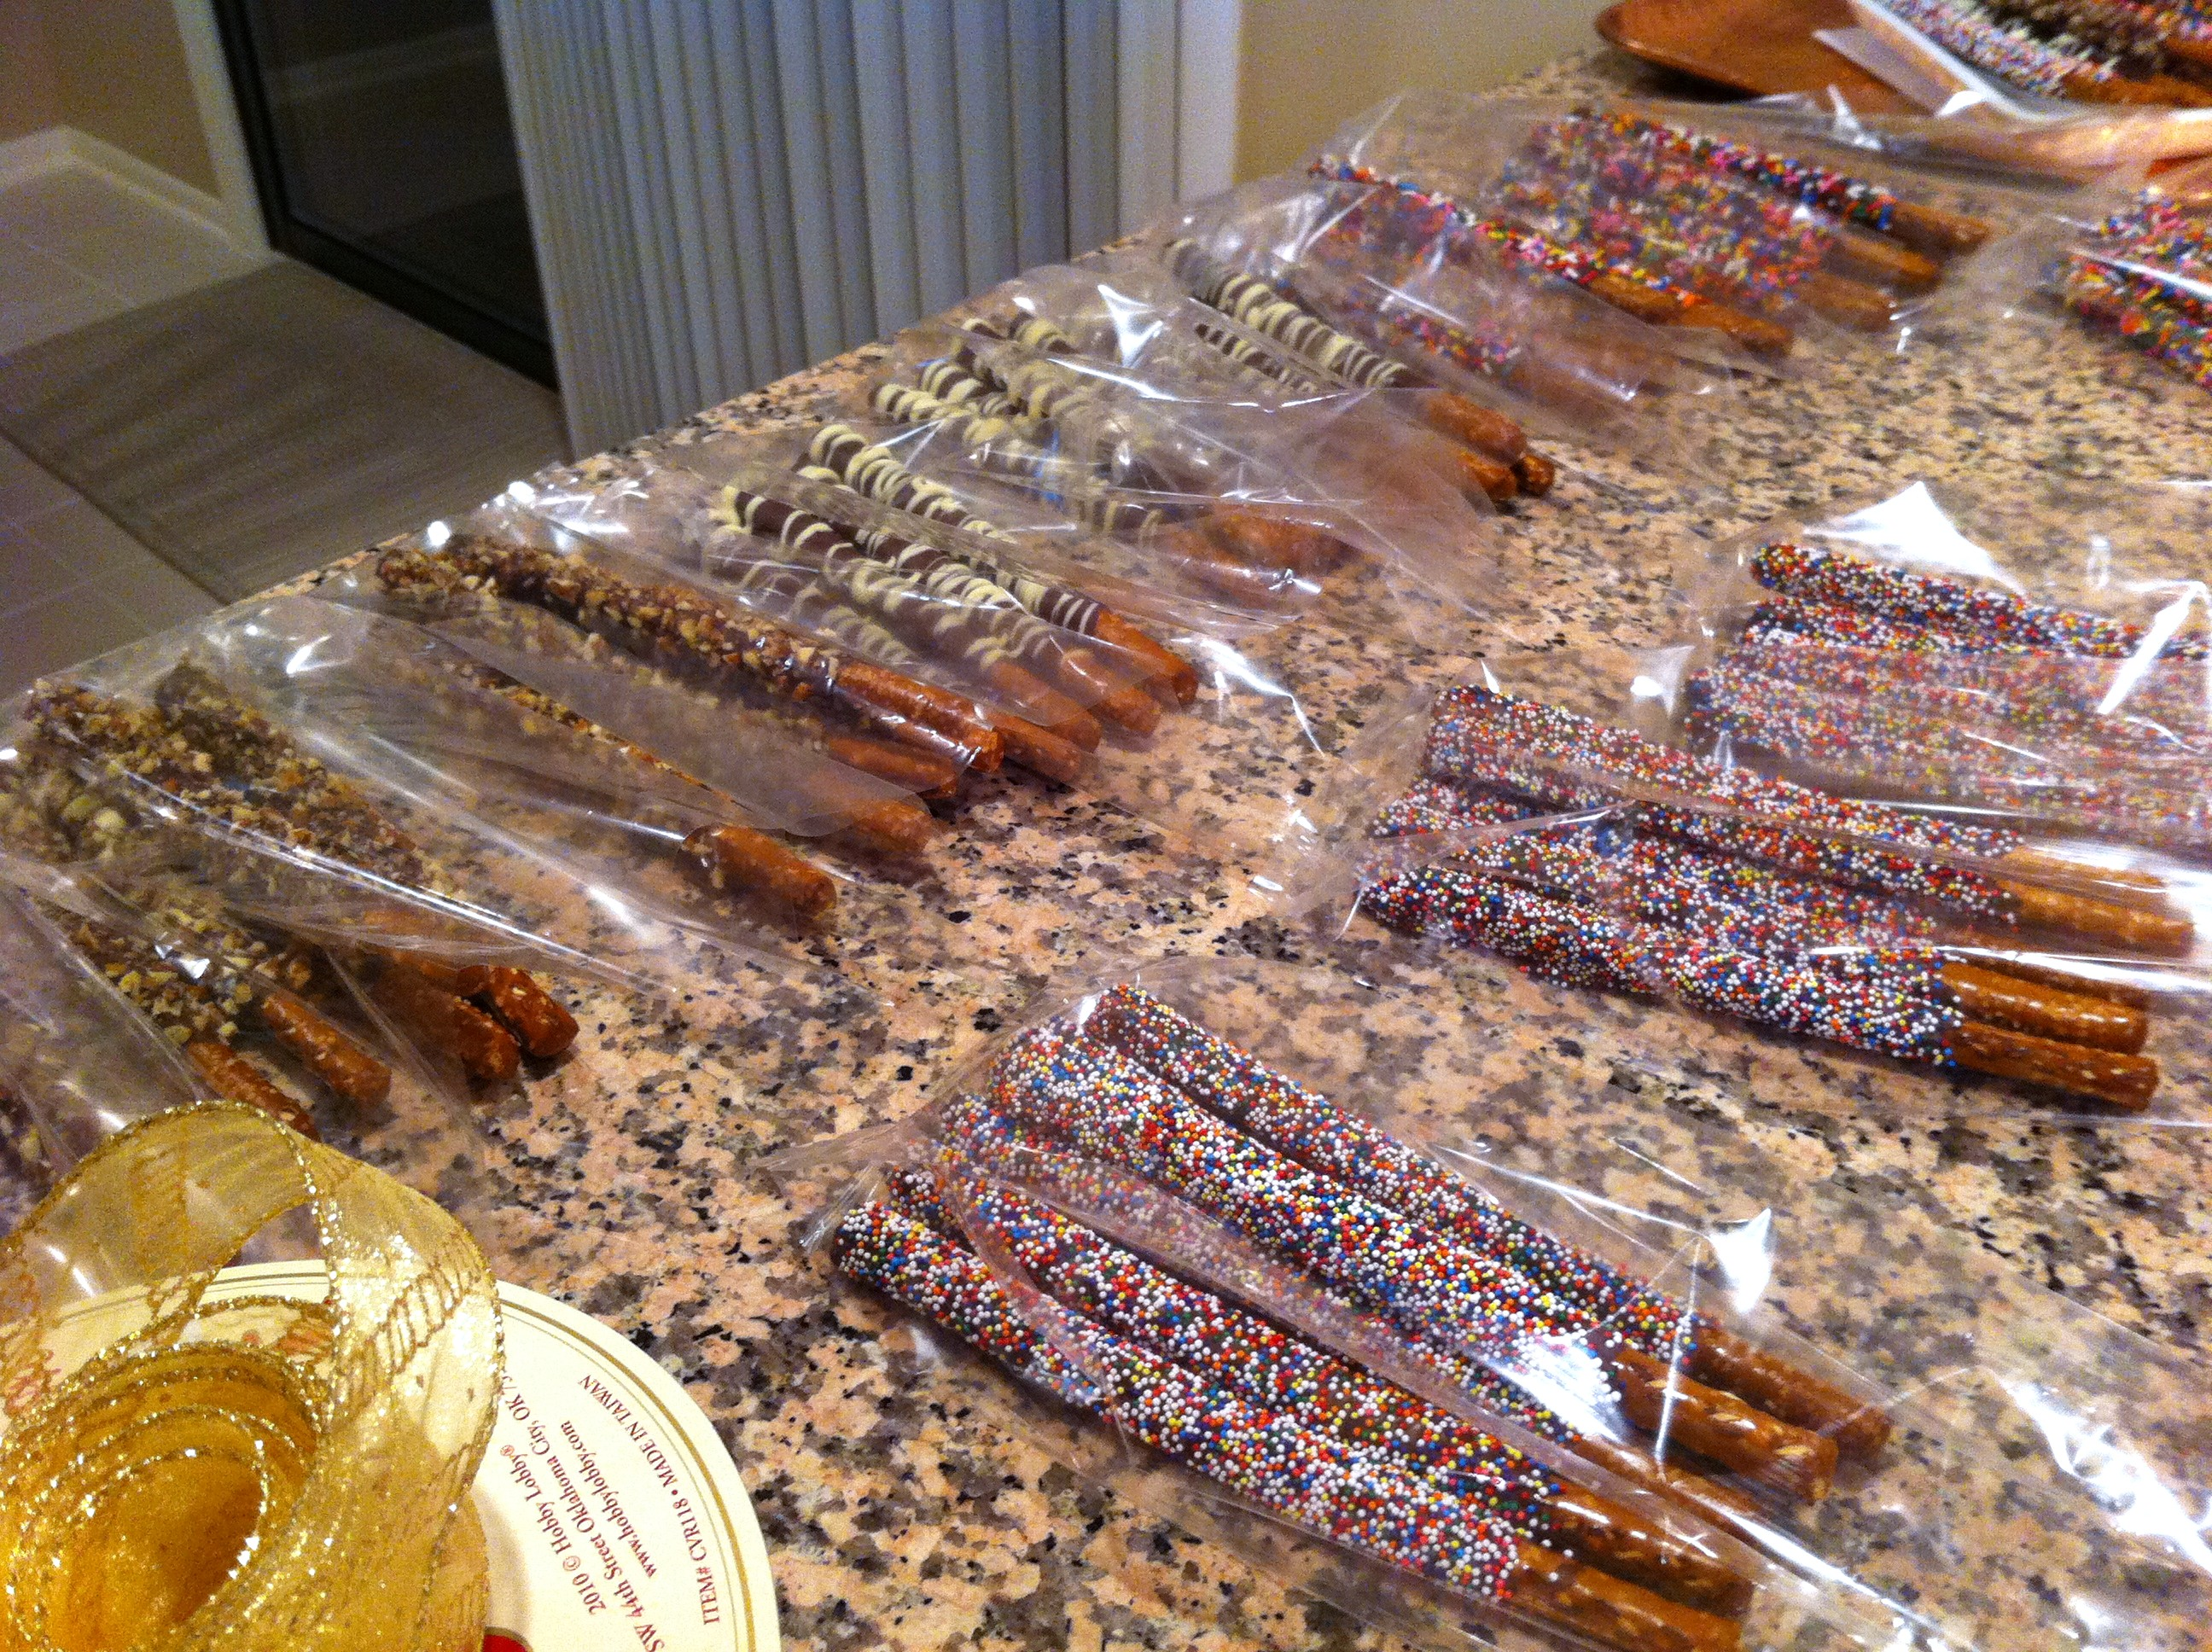 Recipe: Chocolate Covered Pretzels